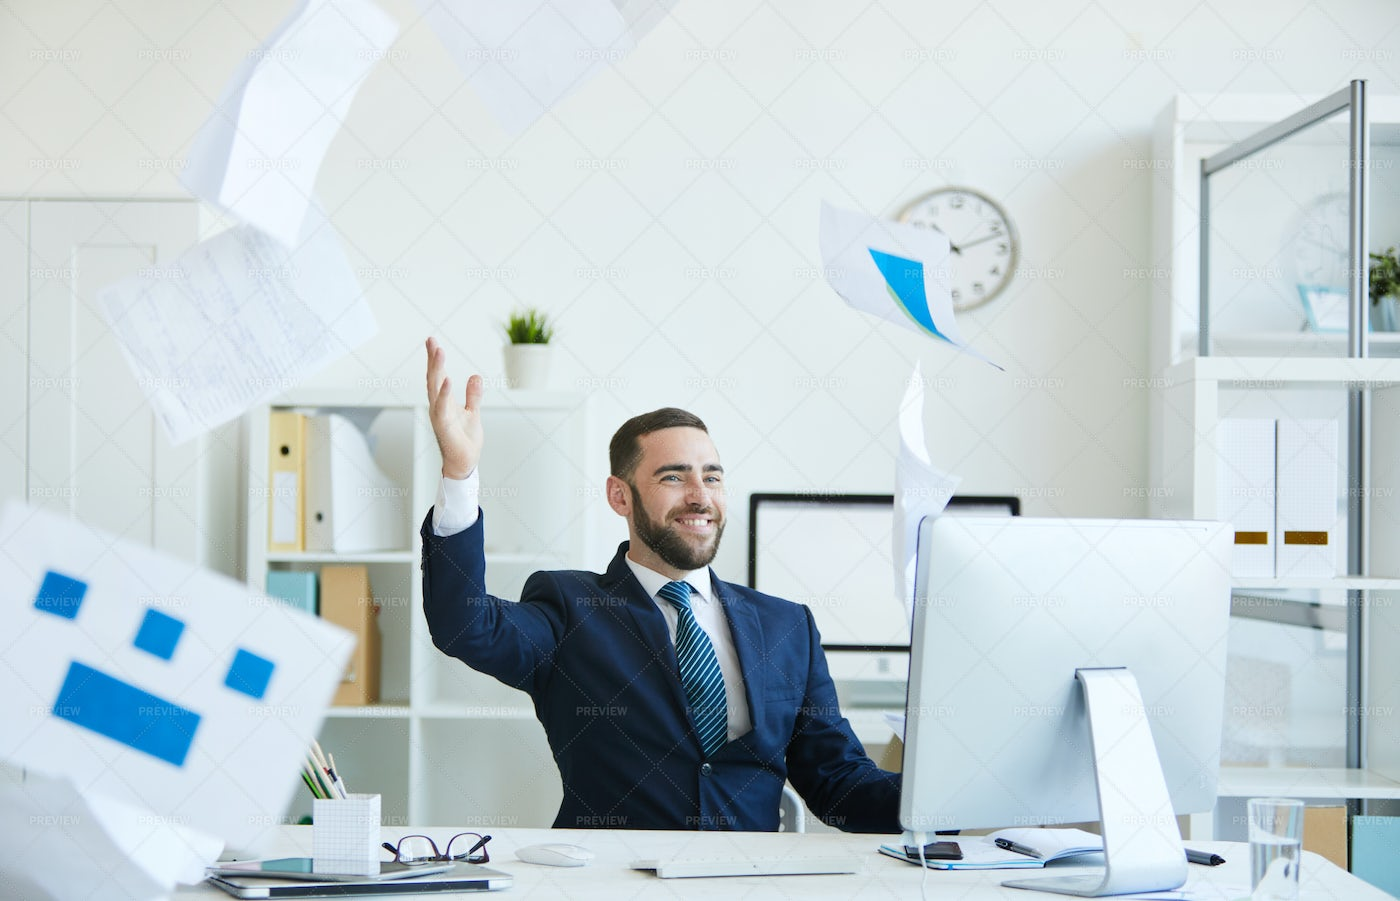 Carefree Office Employee Throwing...: Stock Photos